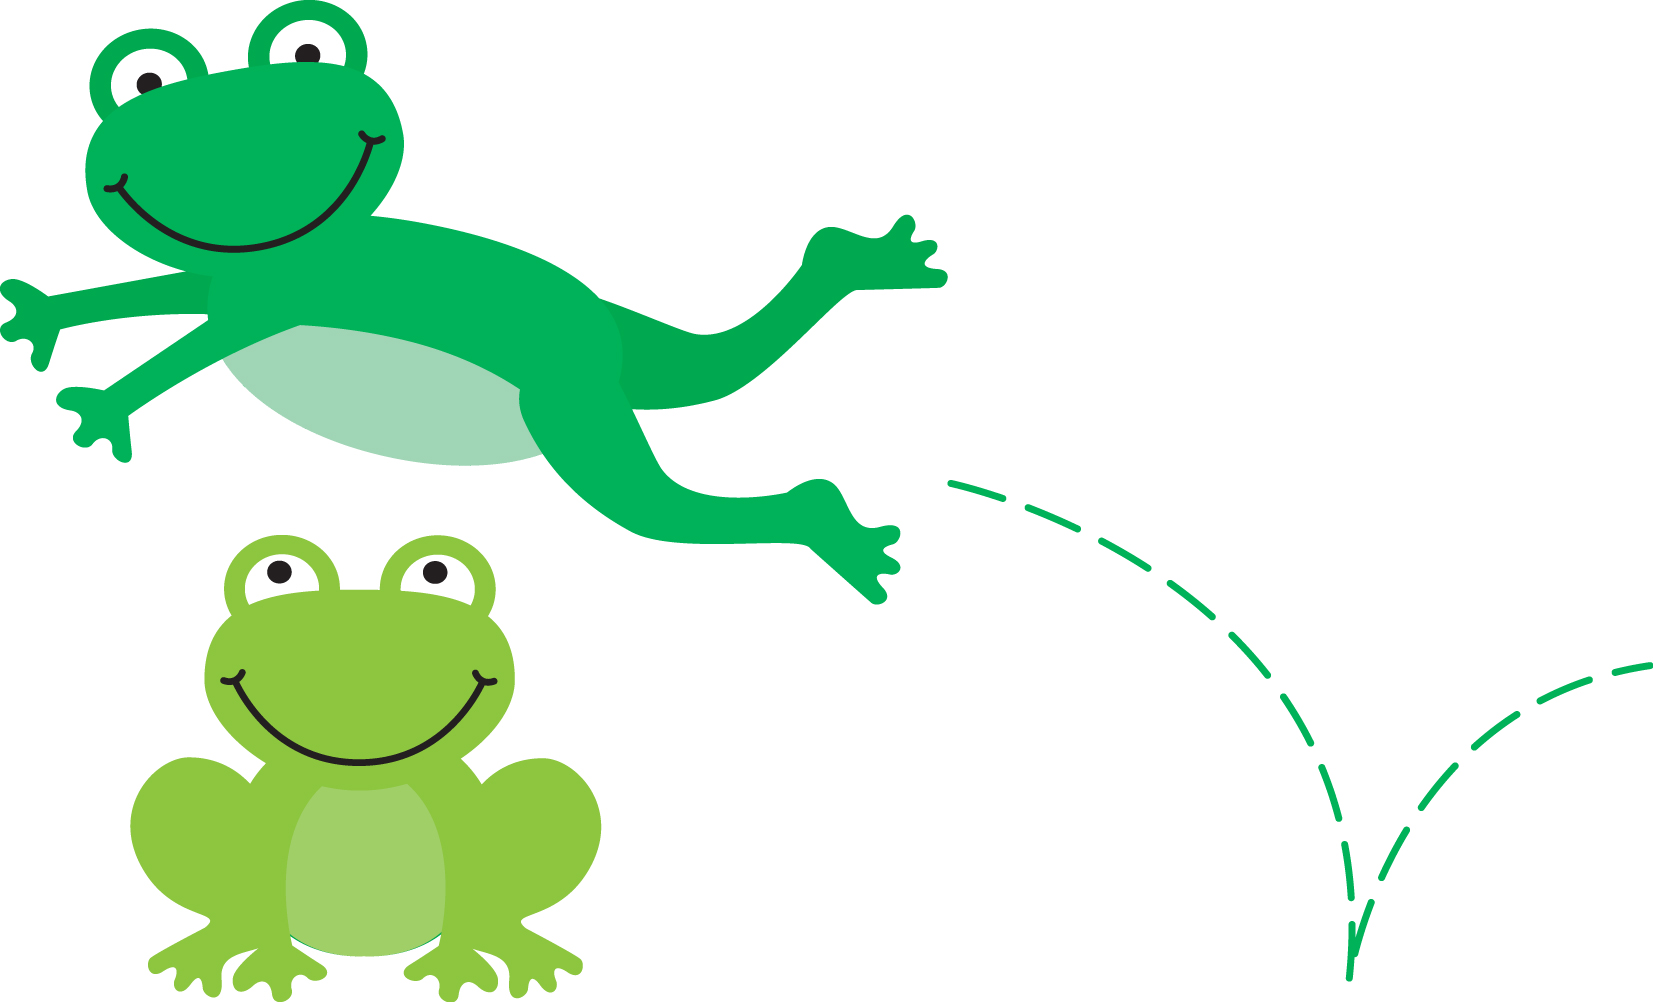 Leapfrog Clipart at GetDrawings.com.